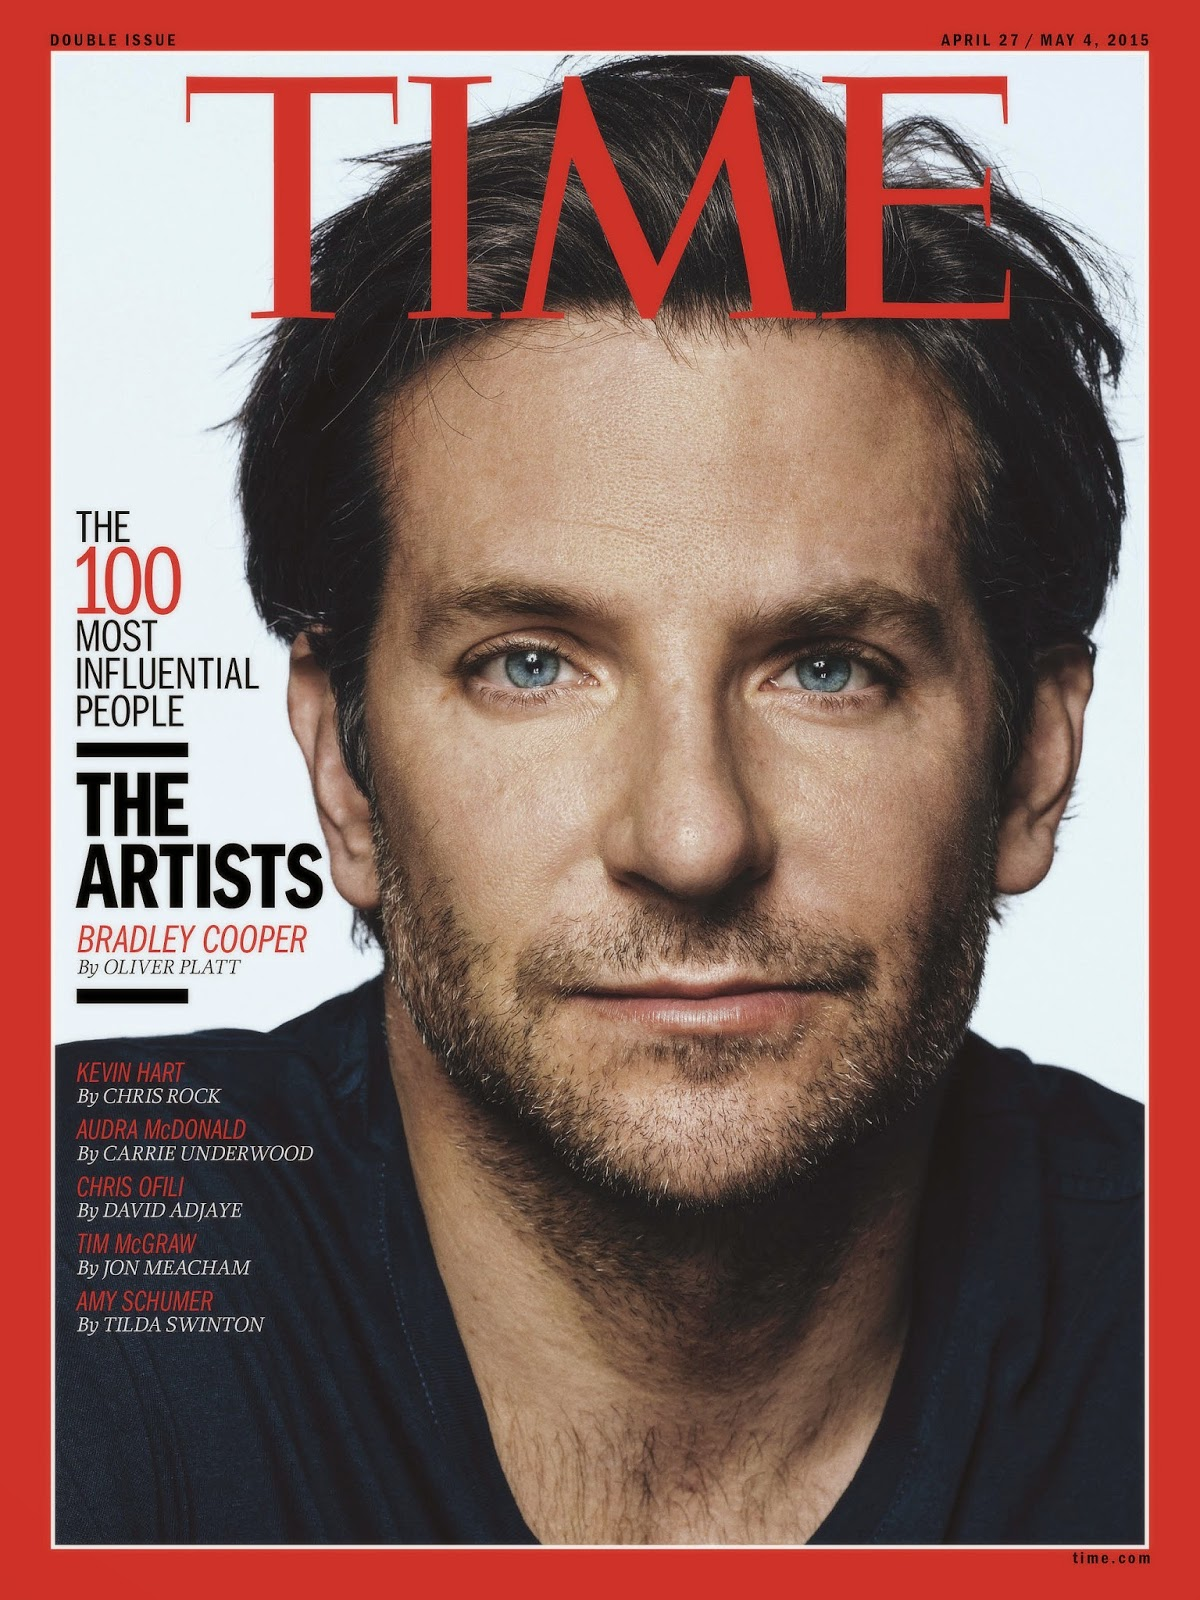 weirdland bradley cooper cinematic chameleon broken characters  bradley cooper cinematic chameleon broken characters mad men